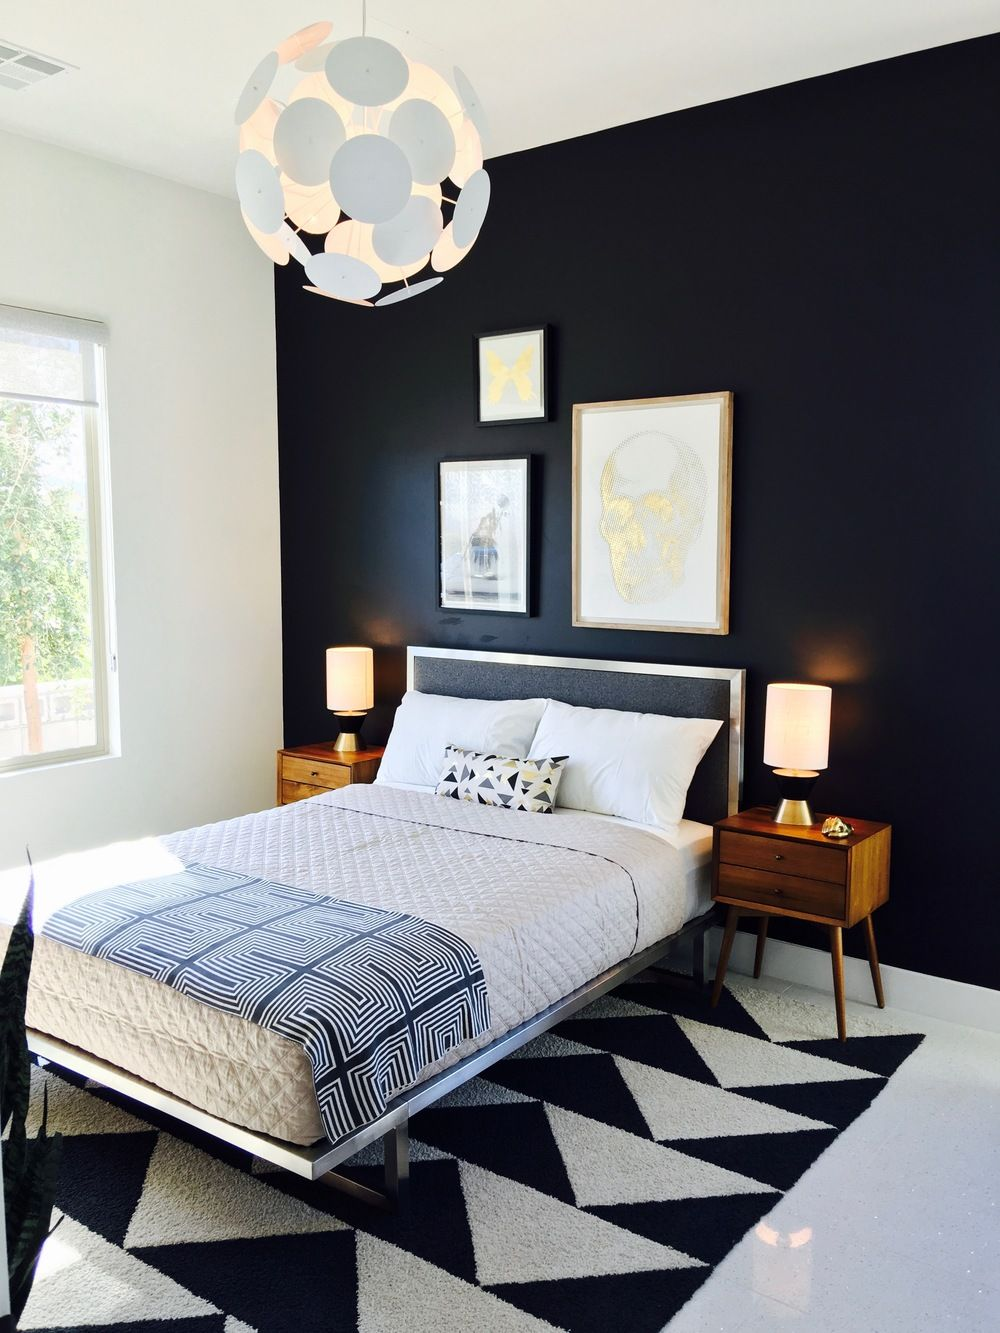 Modern Bedroom Mid Century Bedroom Black And White Bedroom Flor Tiles